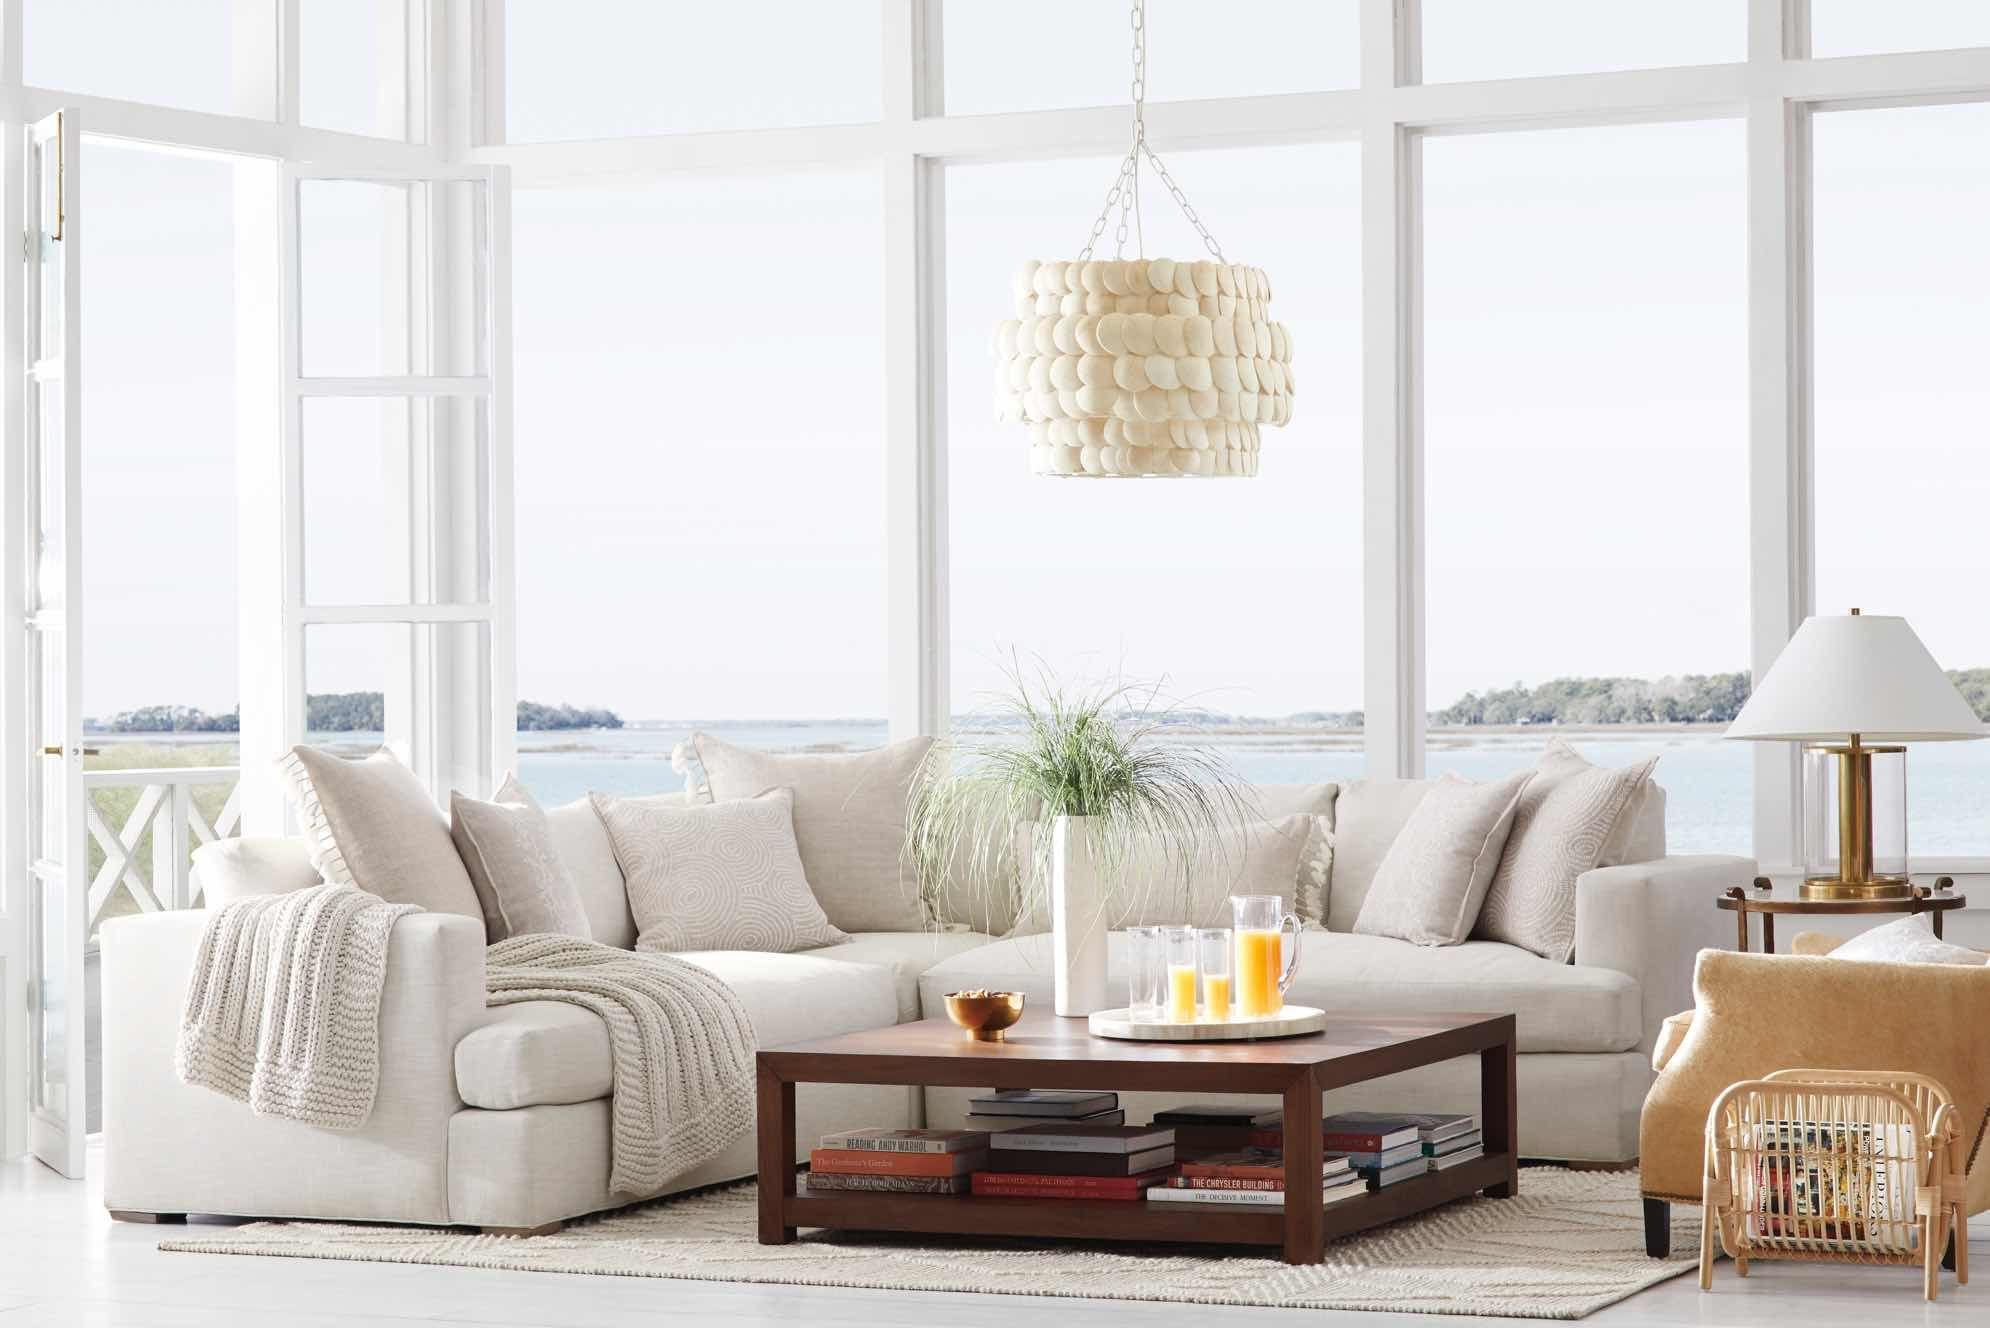 Shop The Look Living Room Designer Rooms Serena Lily In 2020 Beach Living Room Living Room Designs Home Living Room #shop #the #look #living #room